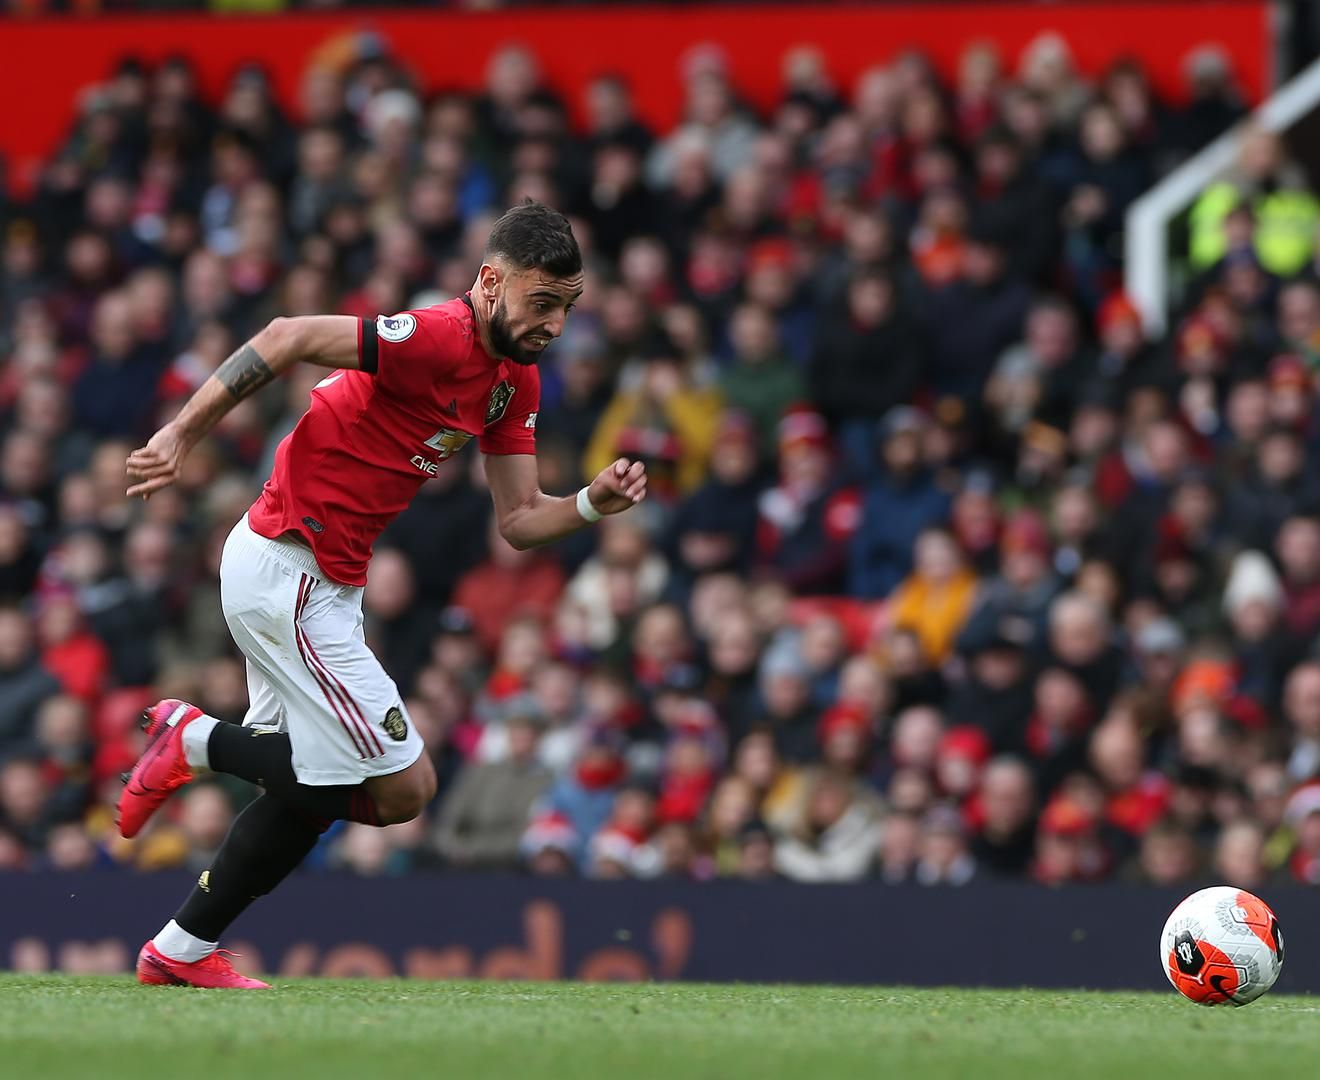 Gallery Of Match Images Man Utd V Watford 23 February 2020 Manchester United In 2020 Watford Man Image